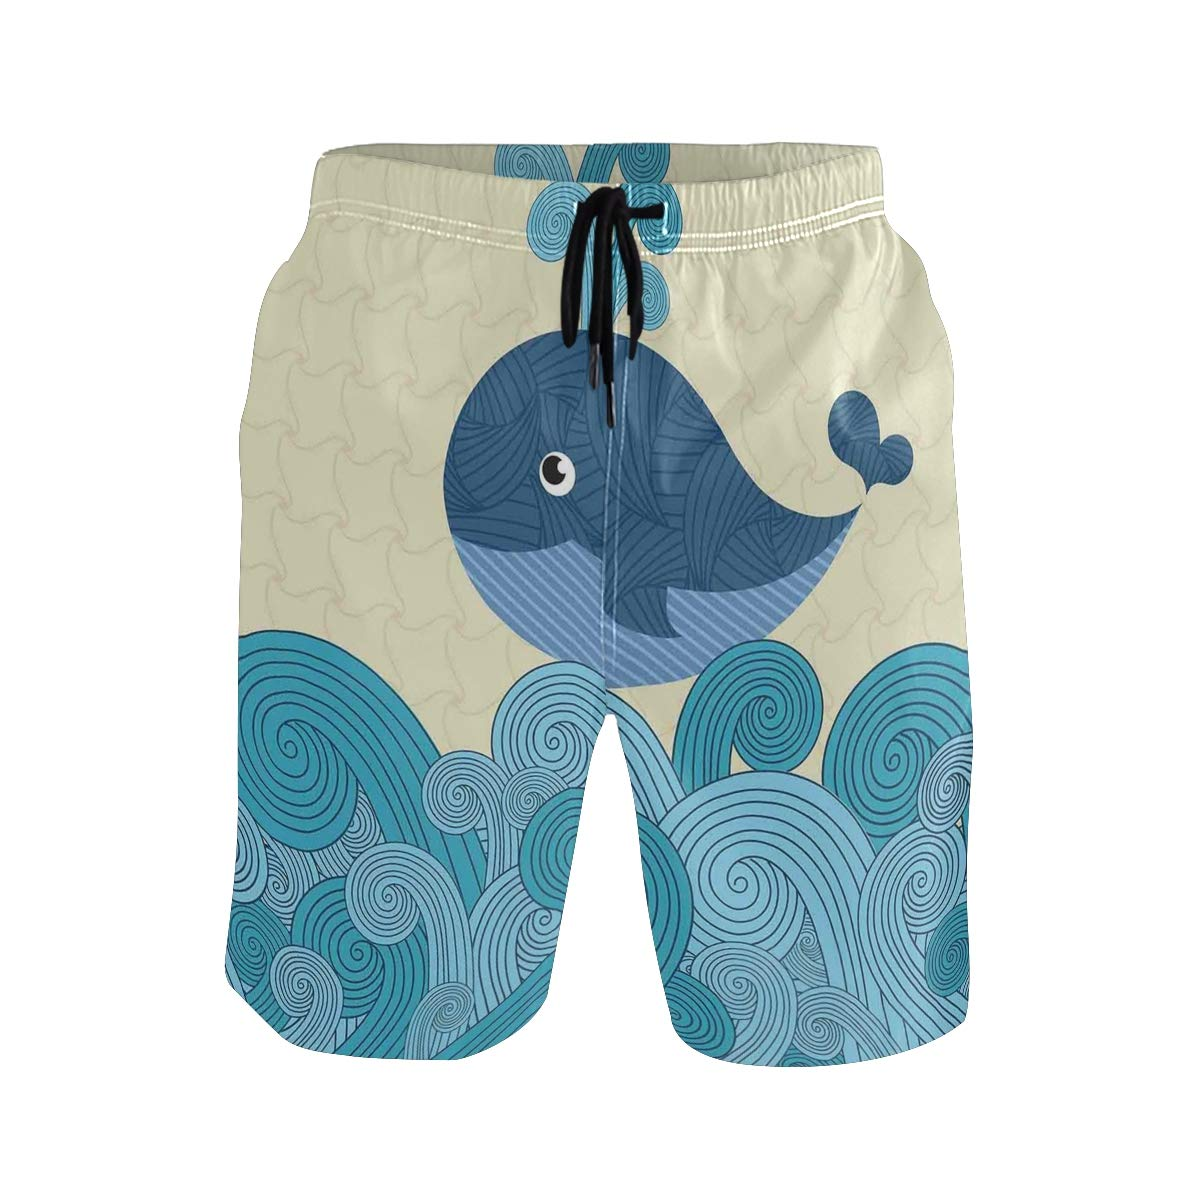 COVASA Mens Summer ShortsCartoon Smiley Cute Patterned Whale with Ornamental S